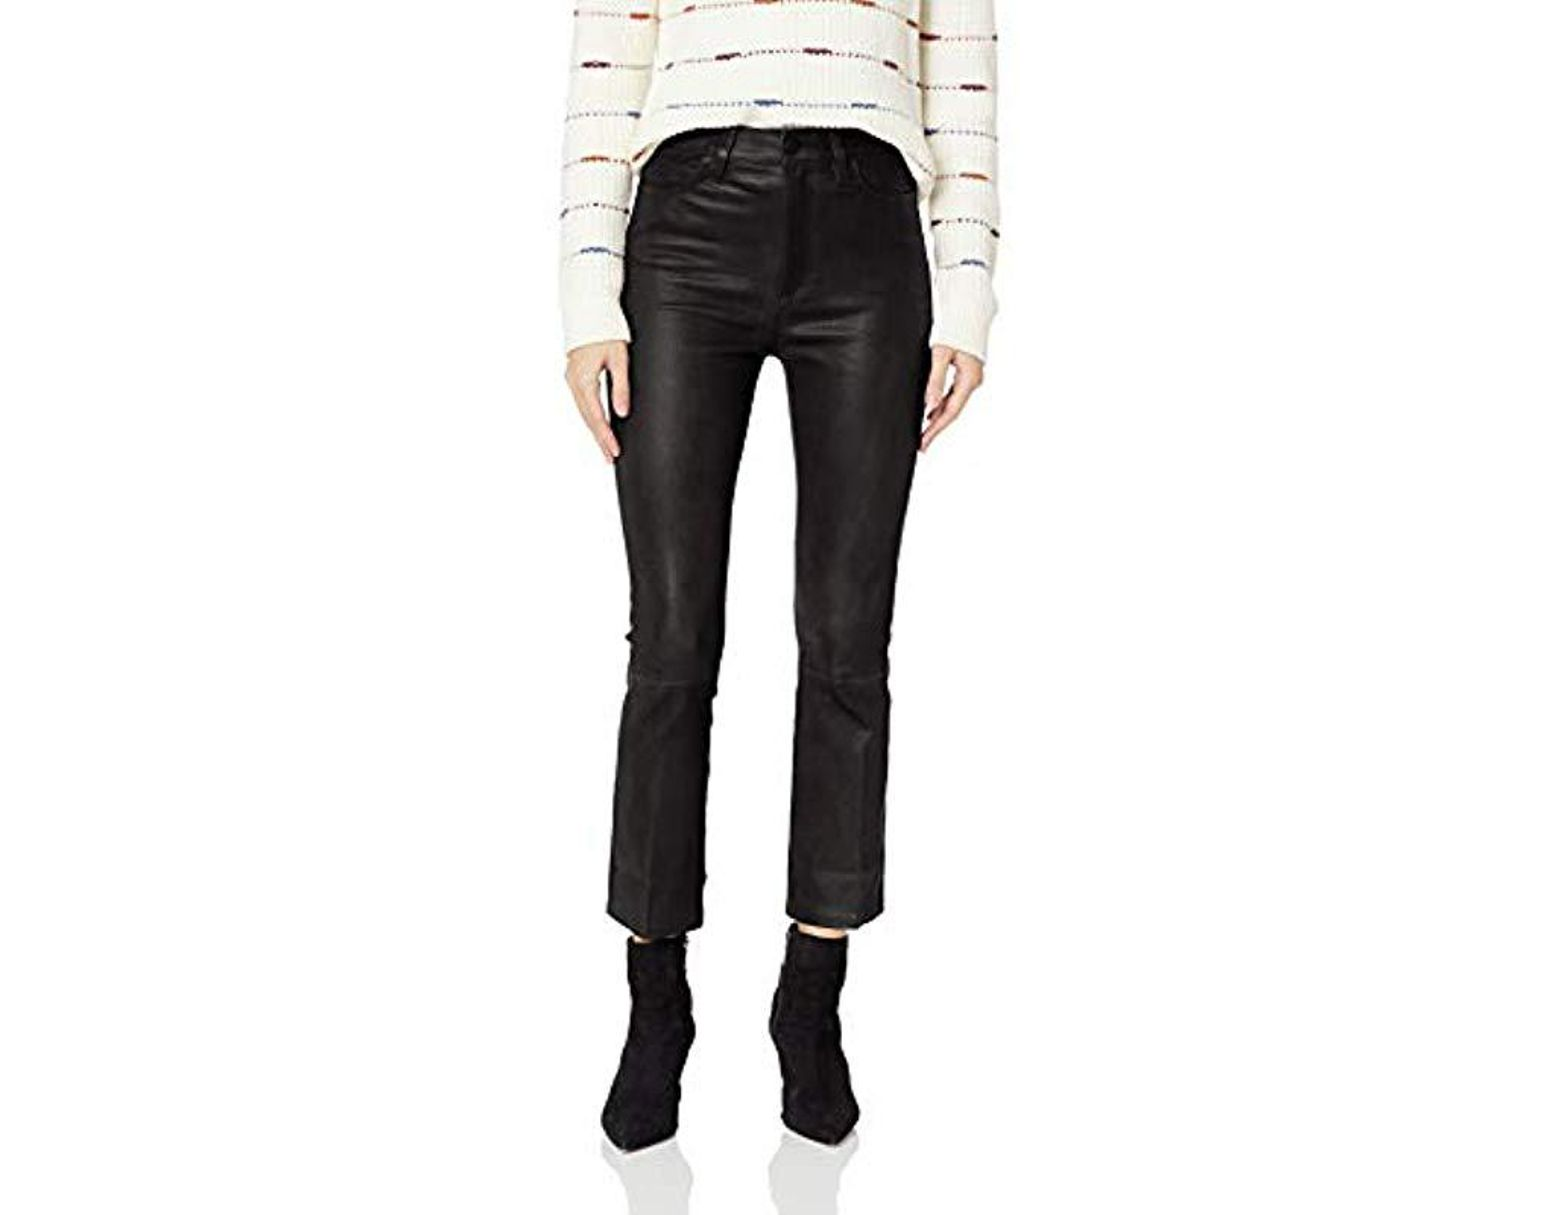 5303258c21 Joe's Jeans Callie High Rise Stretch Leather Cropped Boot Jean in Black -  Lyst